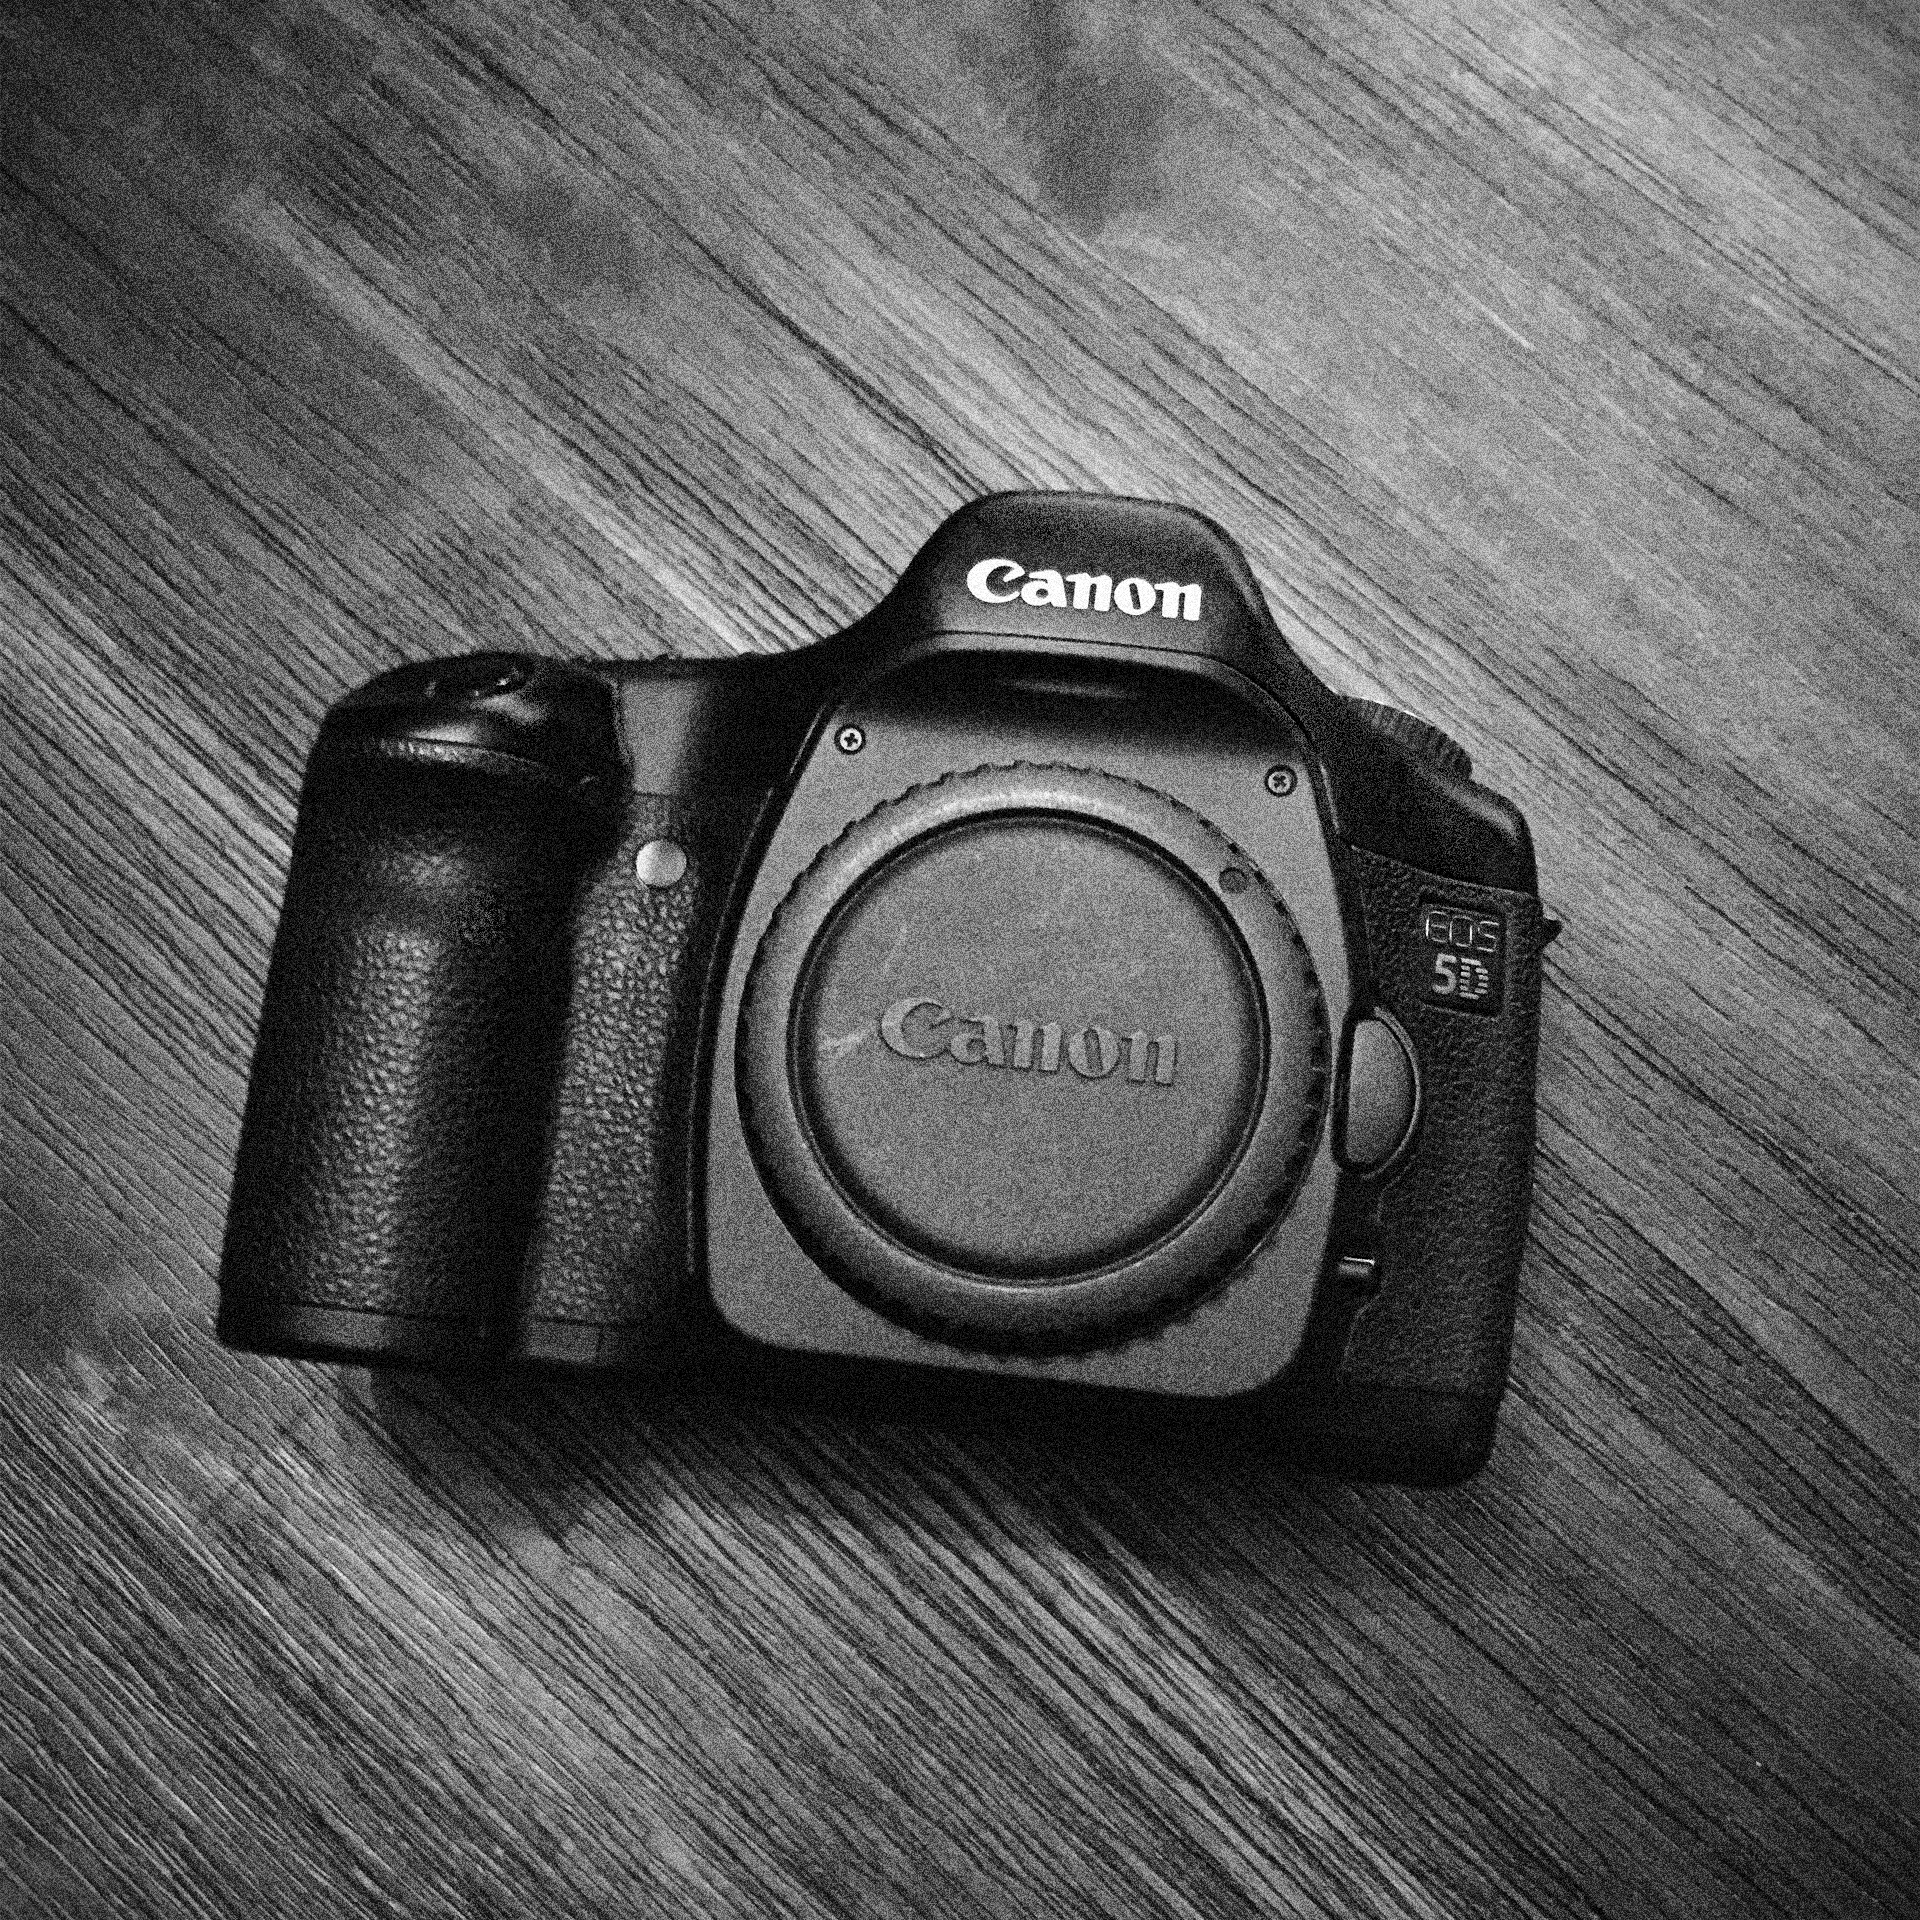 My First Digital Camera from 2007